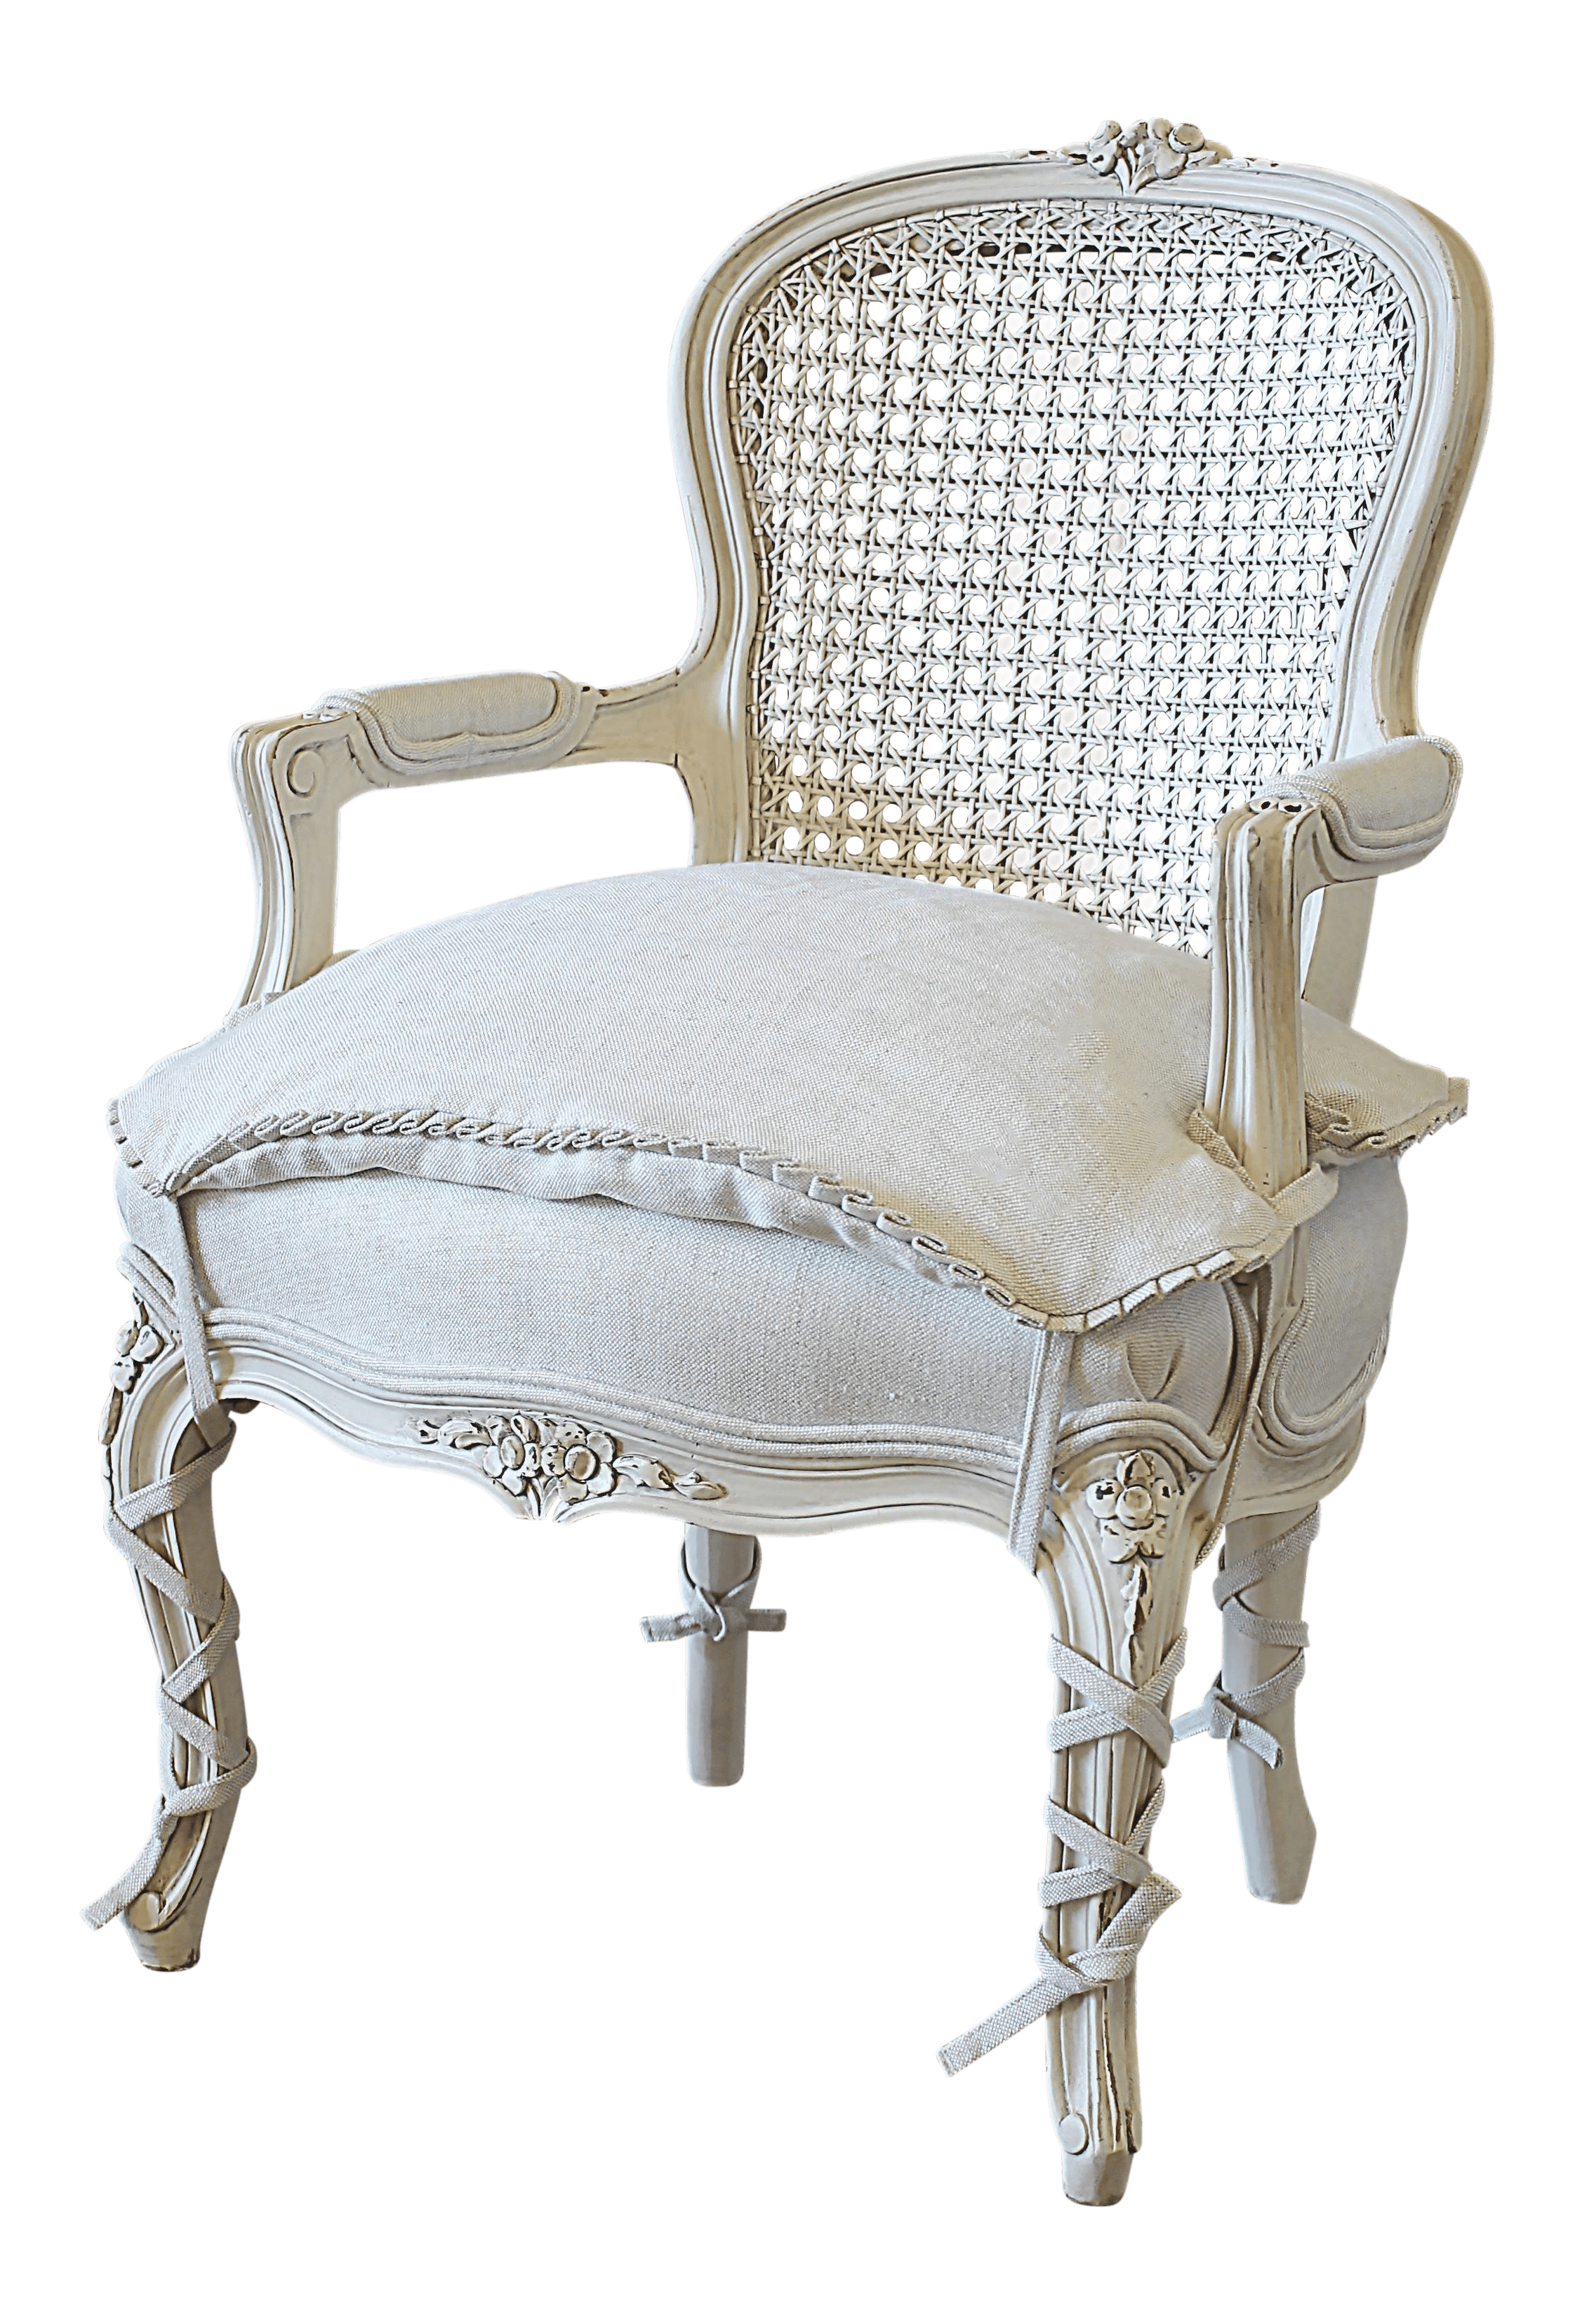 french provincial adele occasional chair wooden adirondack chairs vintage used shabby chic side chairish 20th century style louis xv cane back childs